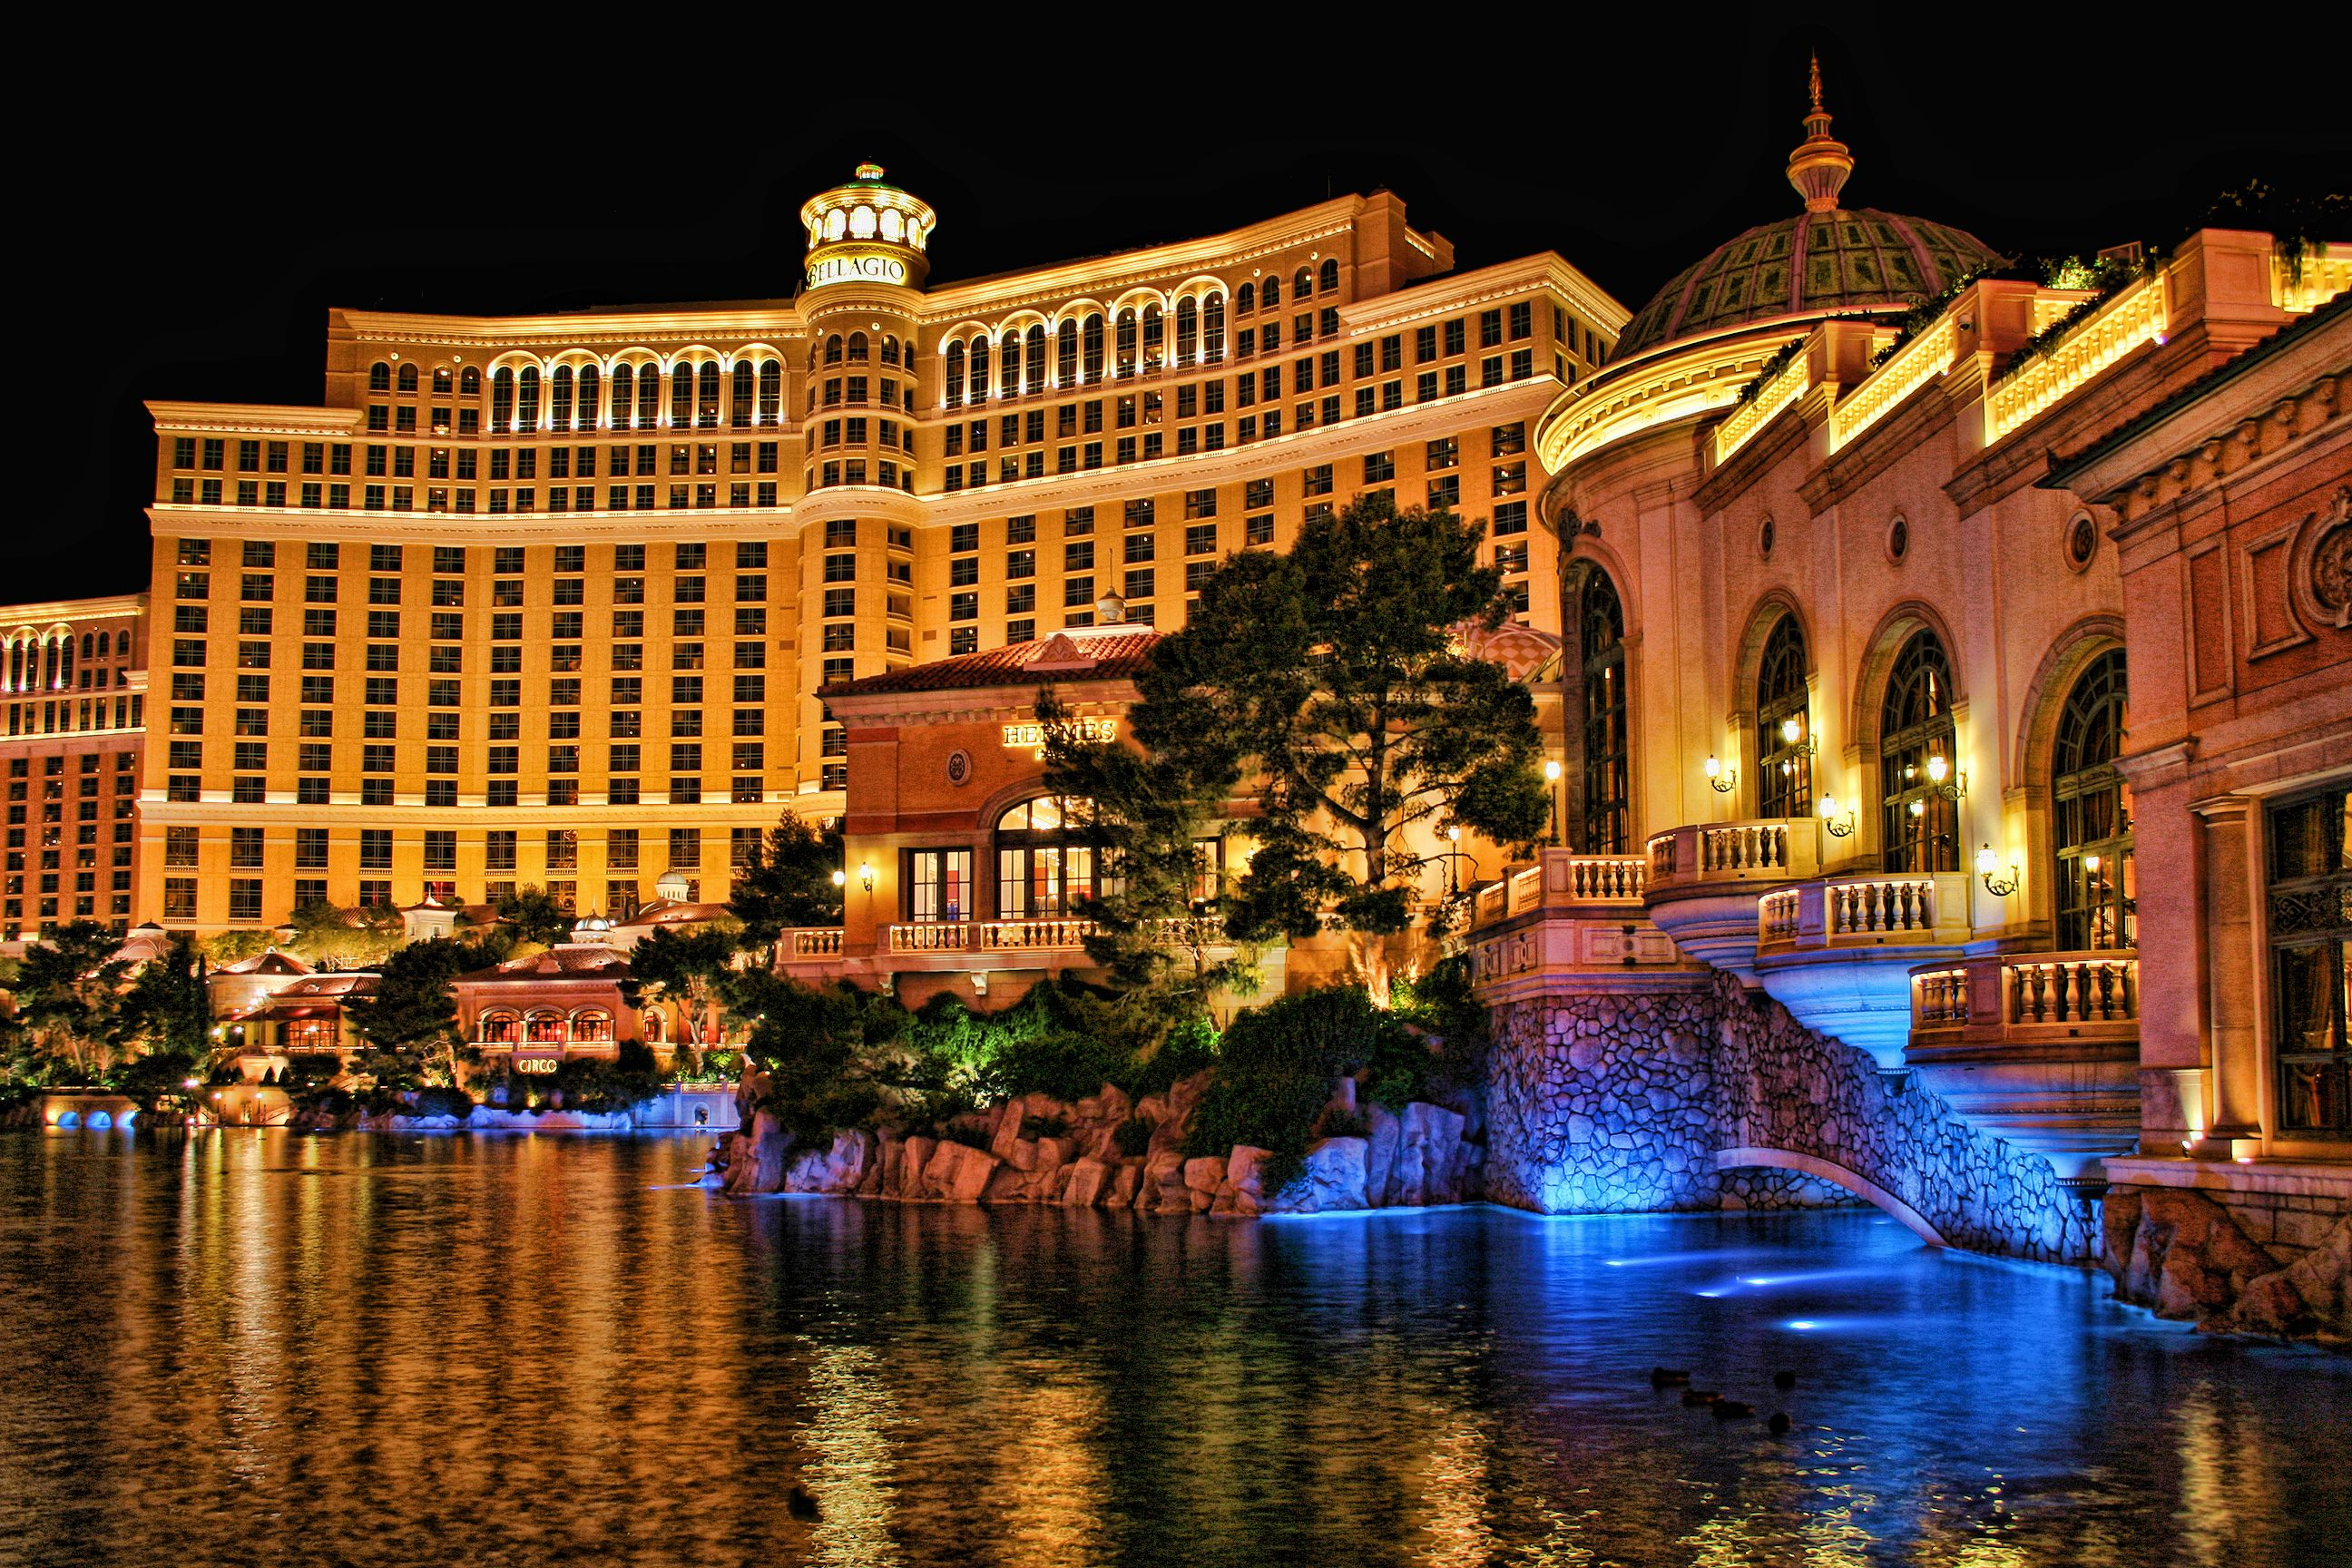 Bellagio is a luxury casino and hotel on the las vegas strip in las vegas nevada it is owned by mgm resorts international